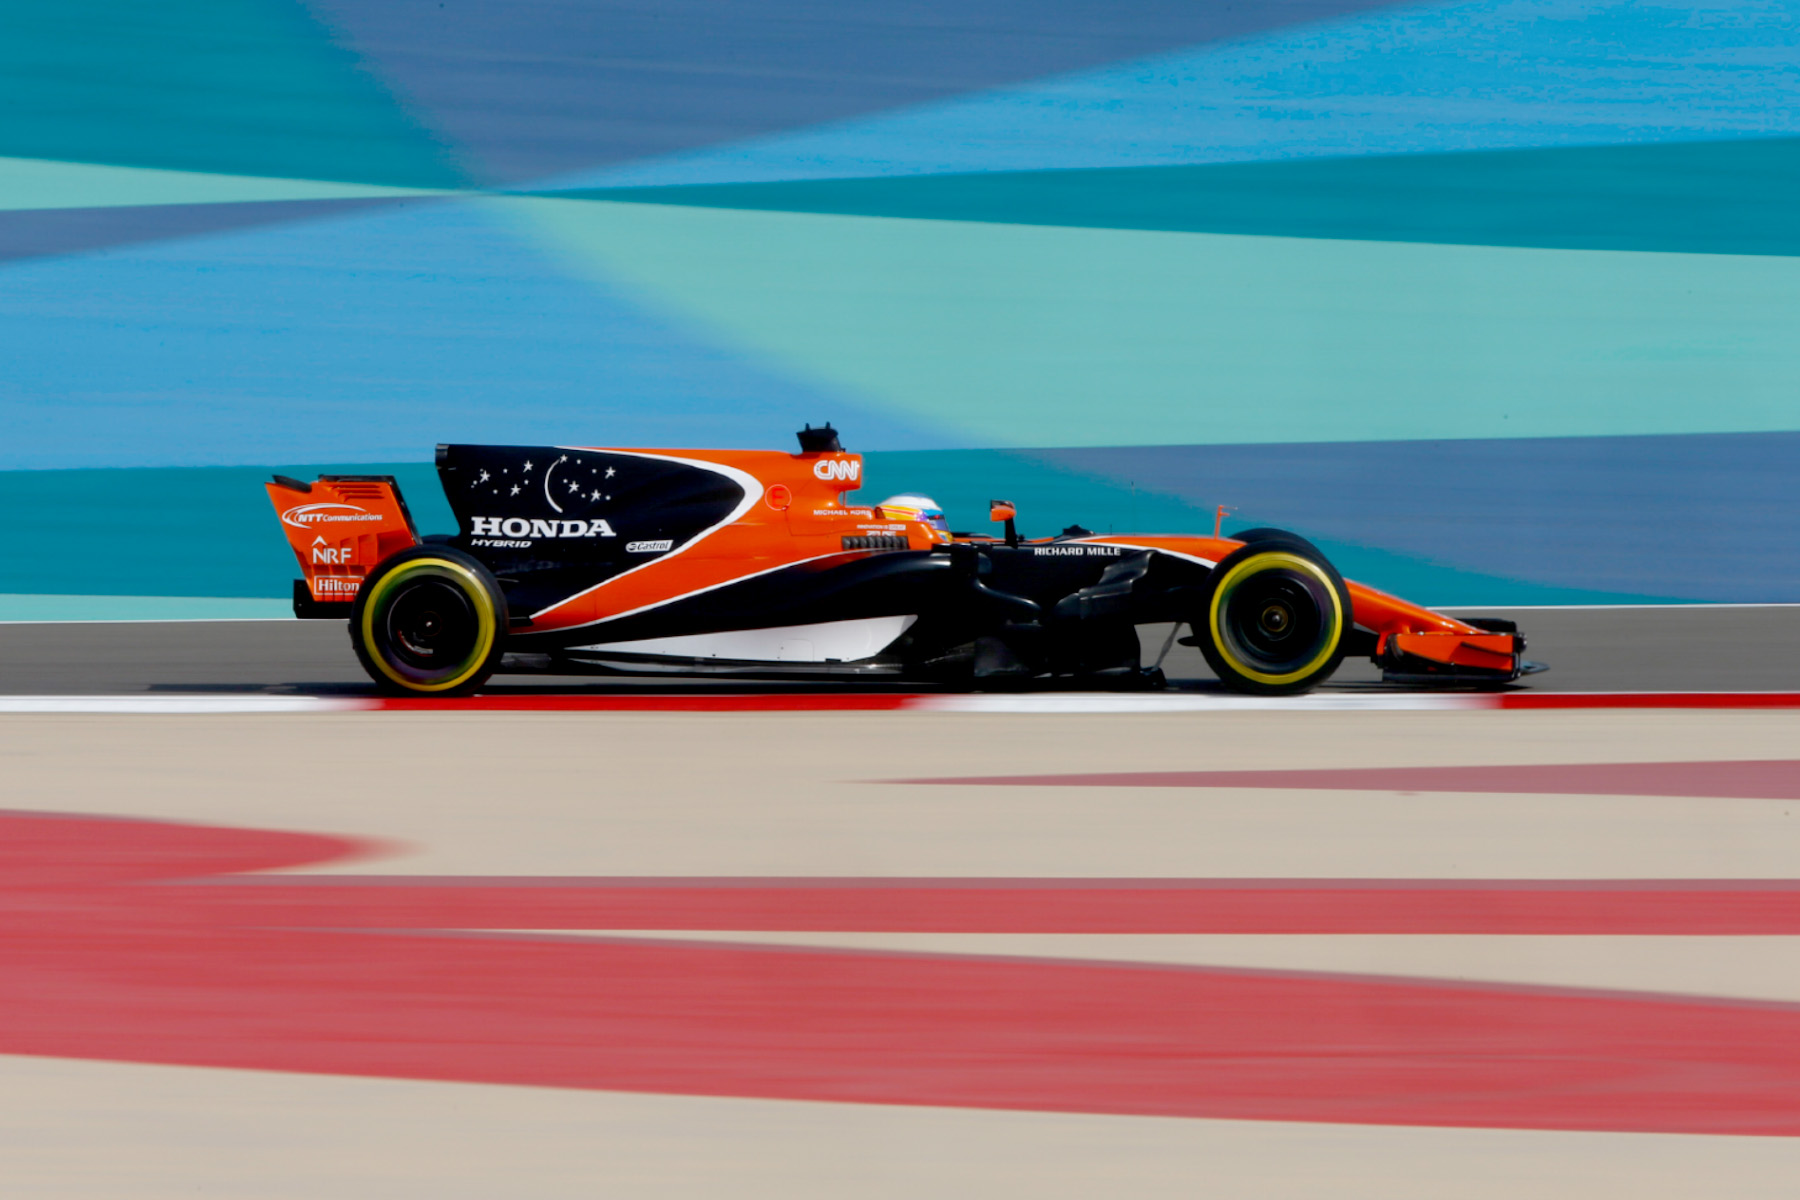 Fernando Alonso in his McLaren-Honda MCL32 in Bahrain.